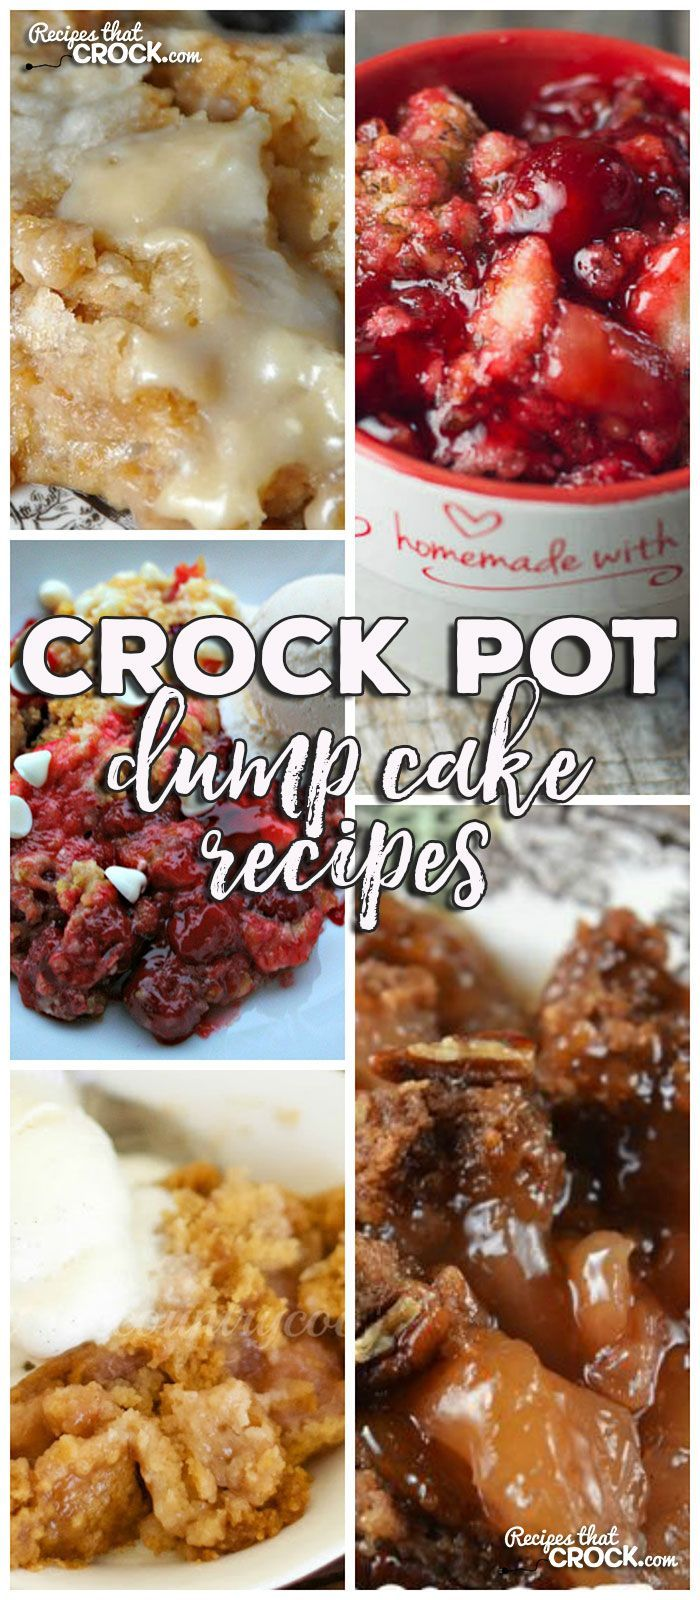 This week for our Friday Favorites we have Crock Pot Dump Cake Recipes we have Crock Pot Apple Spice Dump Cake, Crock Pot Peaches 'n Cream Dump Cake, Crock Pot Cherry Pineapple Dump Cake, Crock Pot Apple Dump Cake and Crock Pot White Chocolate Cherry Dump Cake!